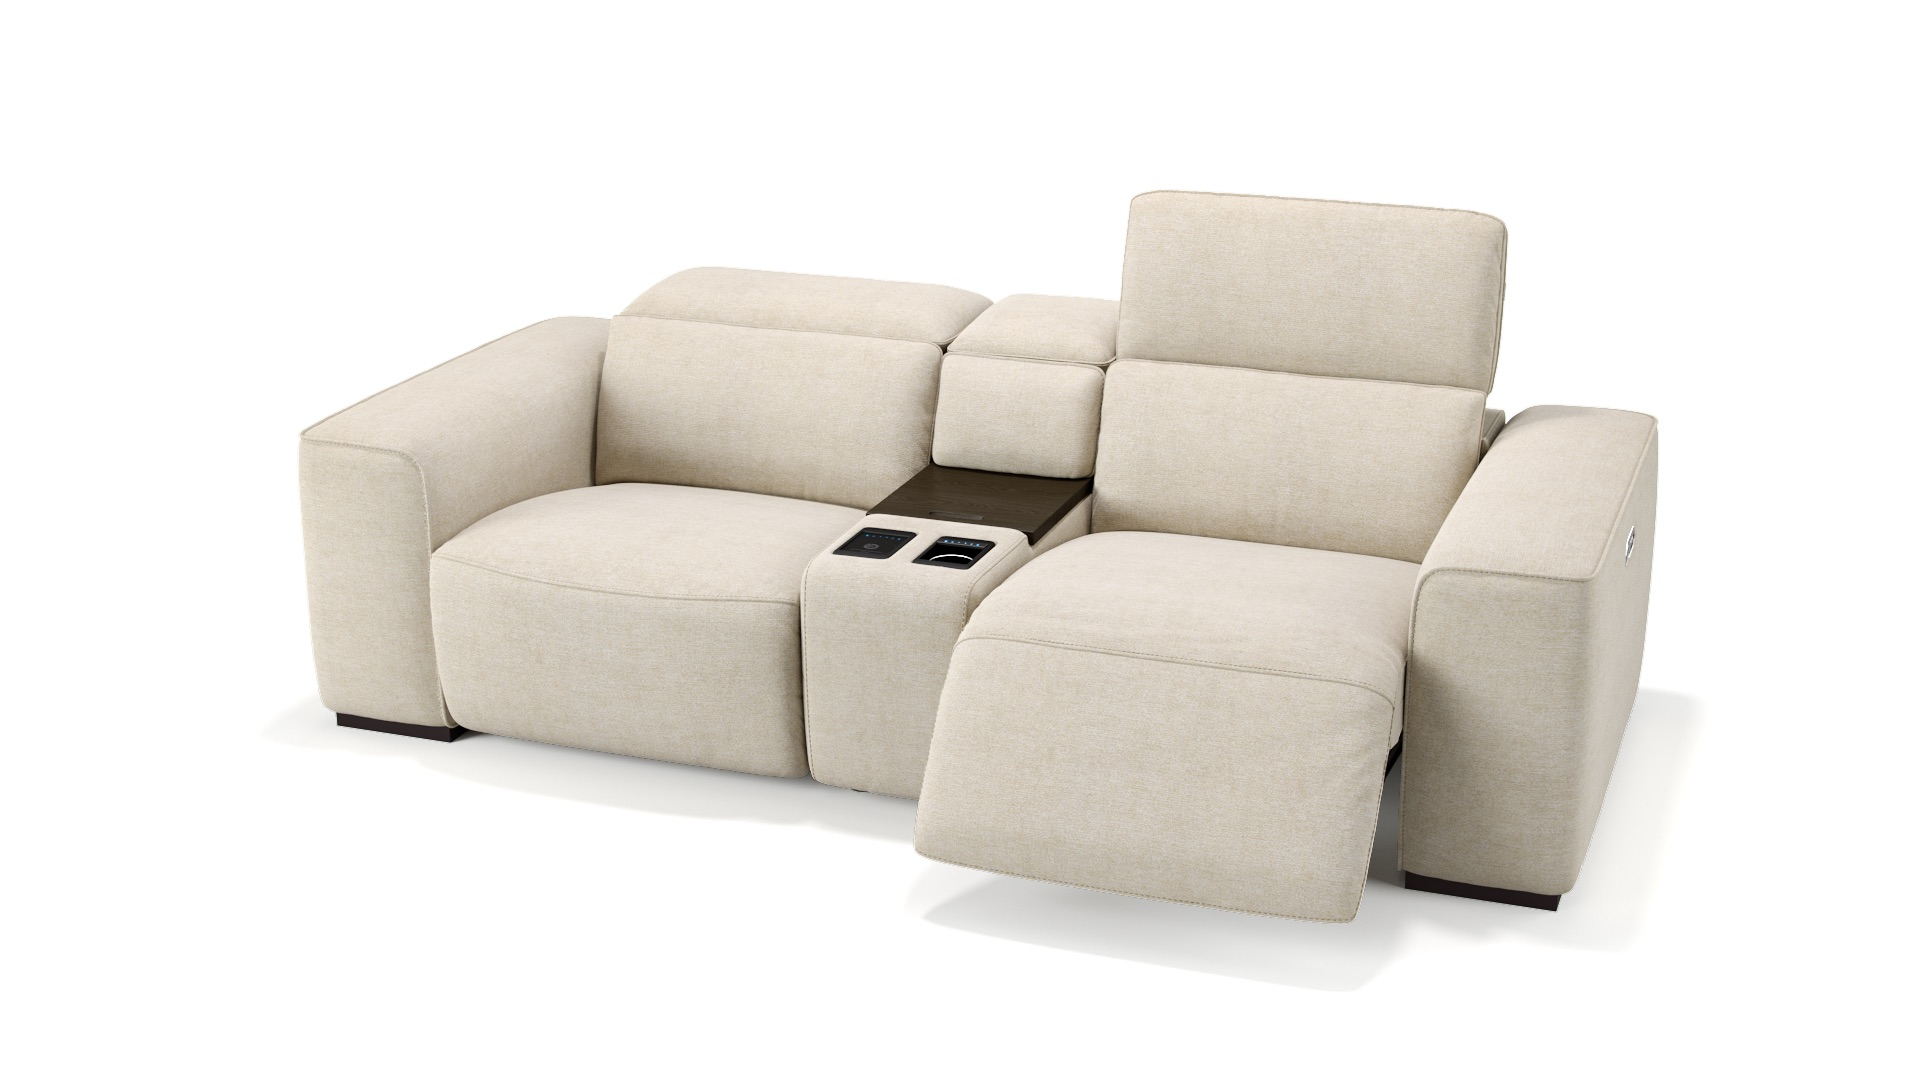 Full Size of Kinosessel 2er Microfaser Kinosofa Mit Relaxfunktion 2 Sitzer Stoffcouch Sofanella Sofa Grau Wohnzimmer Kinosessel 2er Microfaser